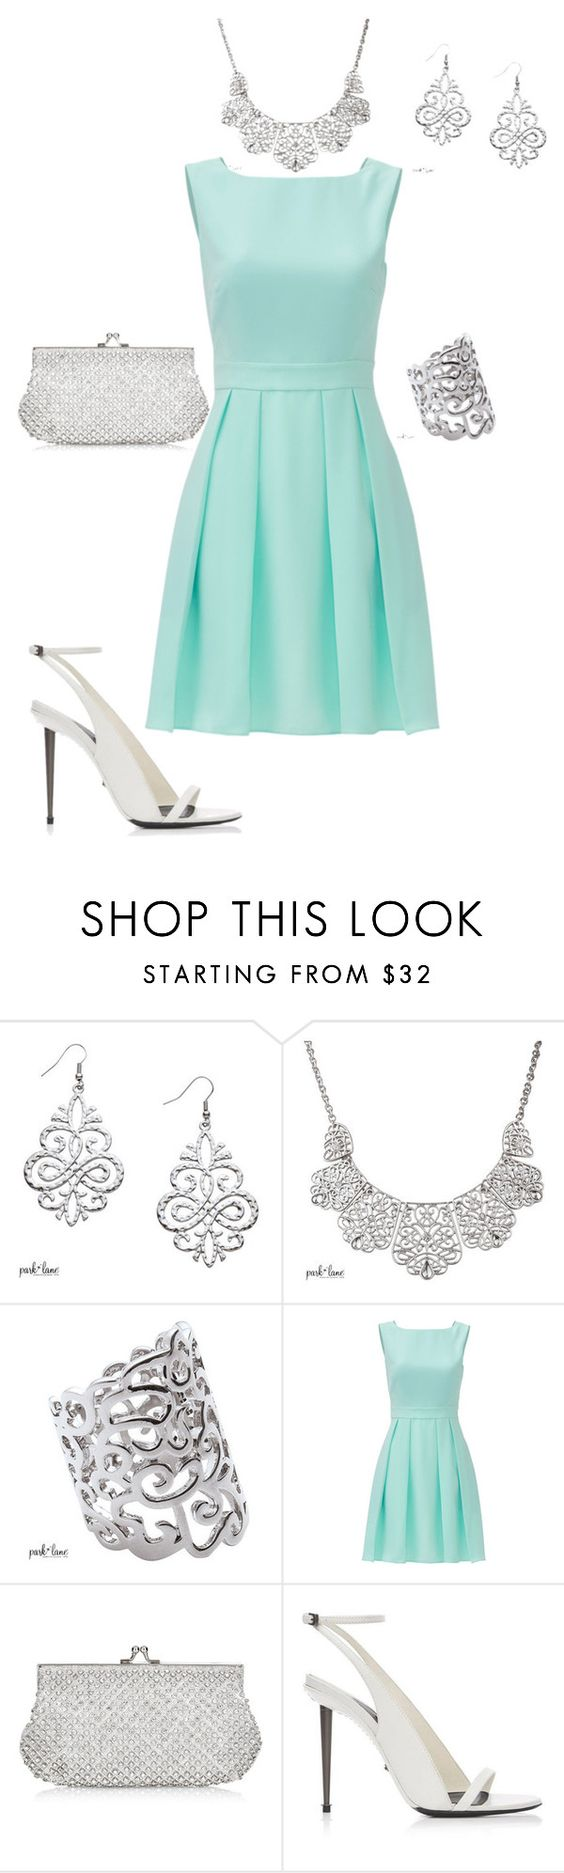 """Park Lane Jewelry - Flora"" by dlpearce on Polyvore featuring Kate Spade and Monsoon"